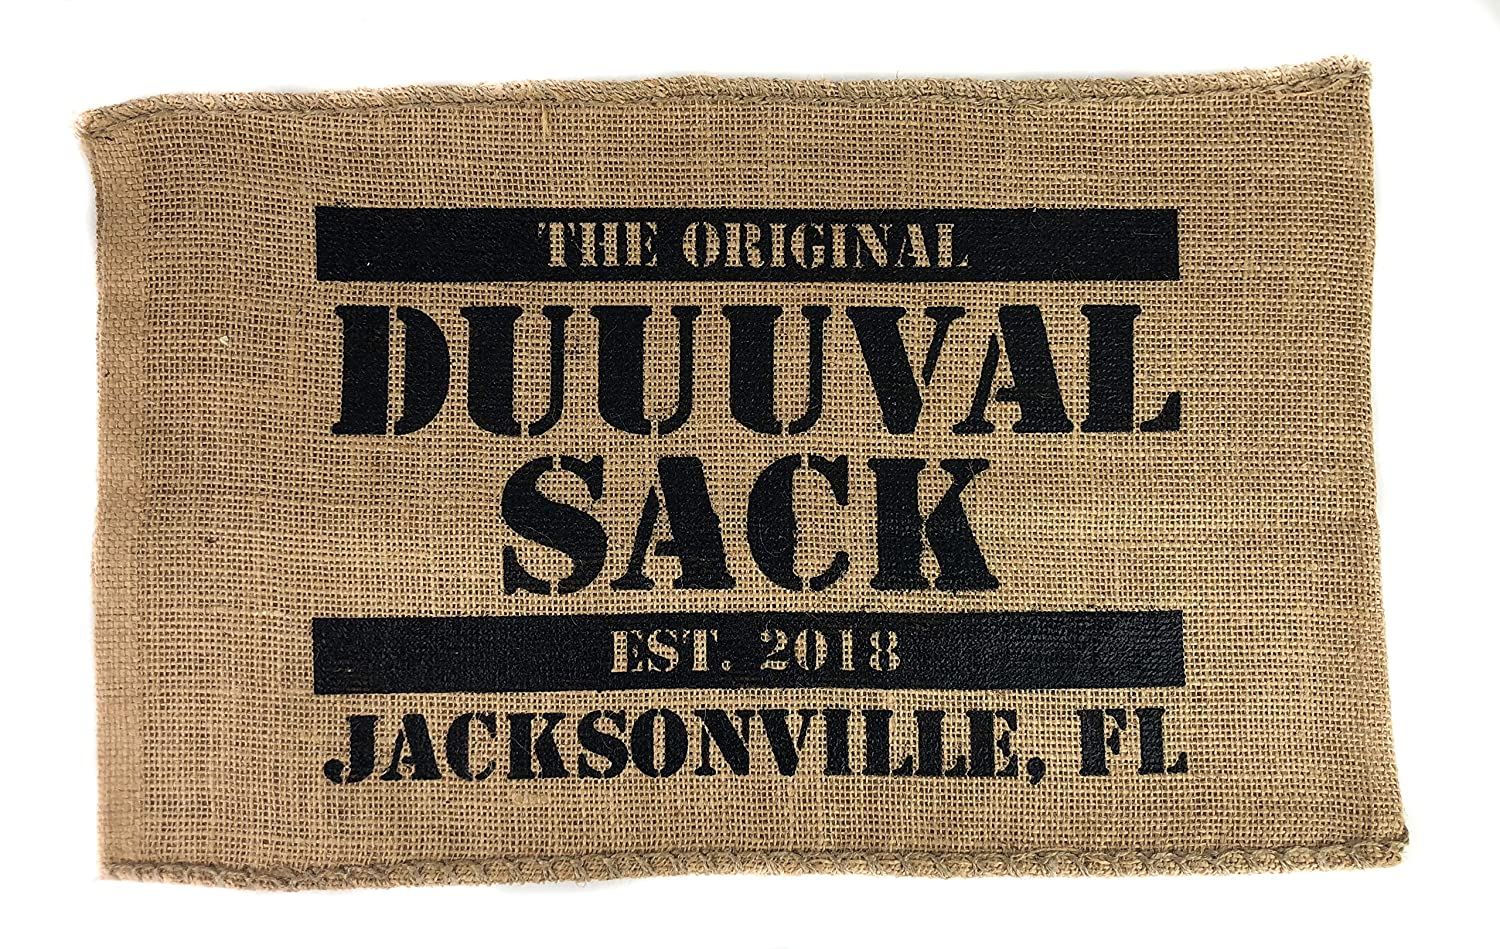 Welcome to Sacksonville GameDay Tailgate Rally Towel Wall Art Home Decor Flag Perfect for Office Man Cave Garage or Living Room The Original Duuuval Sack Jacksonville Florida Home of the Jaguars